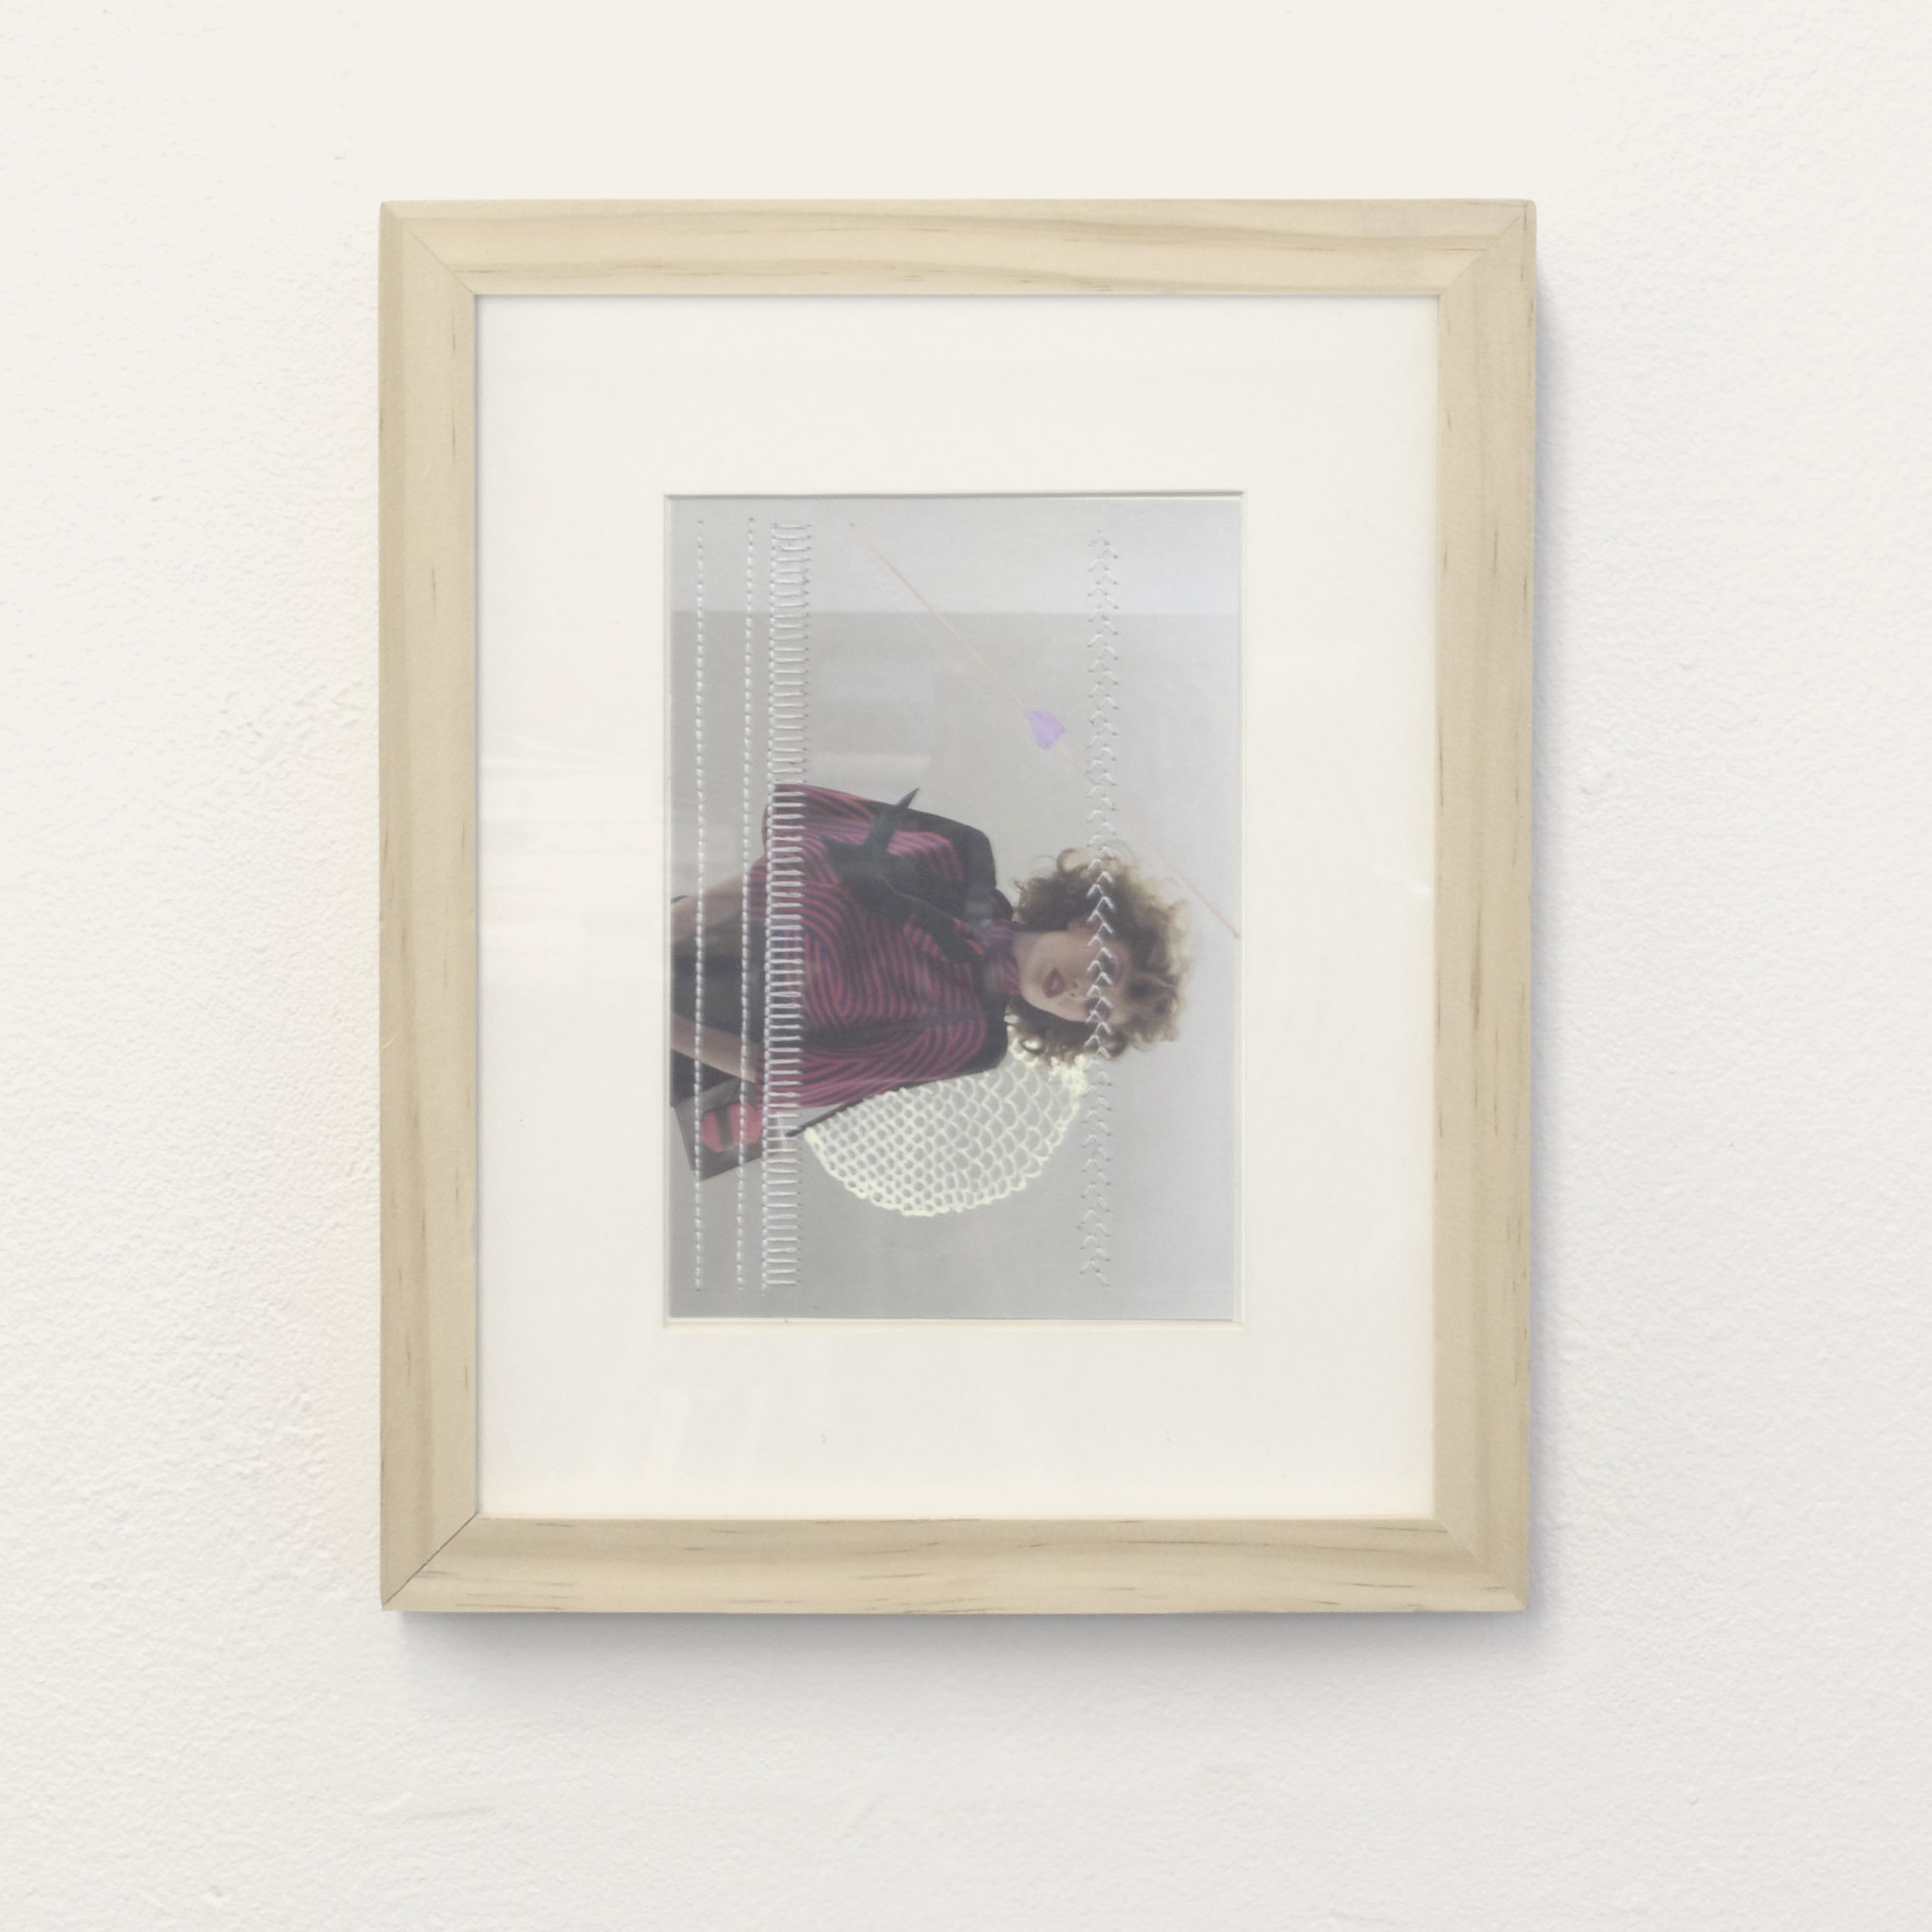 Framed-White_0020_Posey _ Insecure.jpg